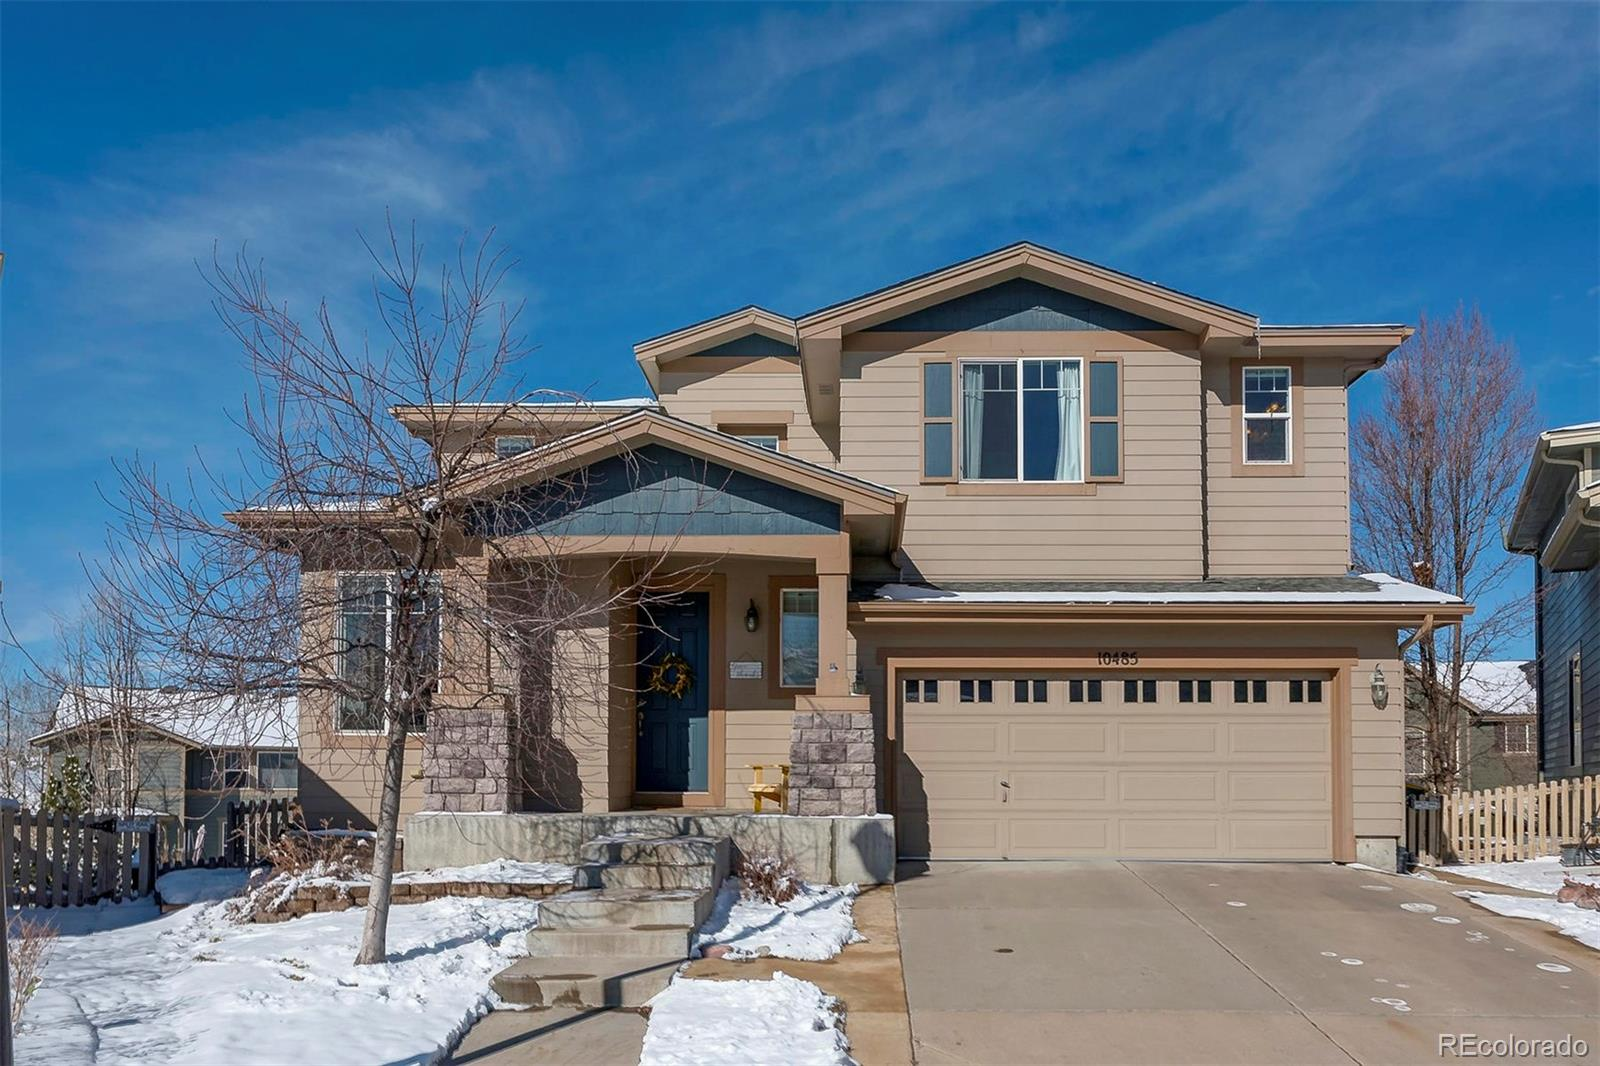 10485 Applebrook Circle, Highlands Ranch, CO 80130 - Highlands Ranch, CO real estate listing